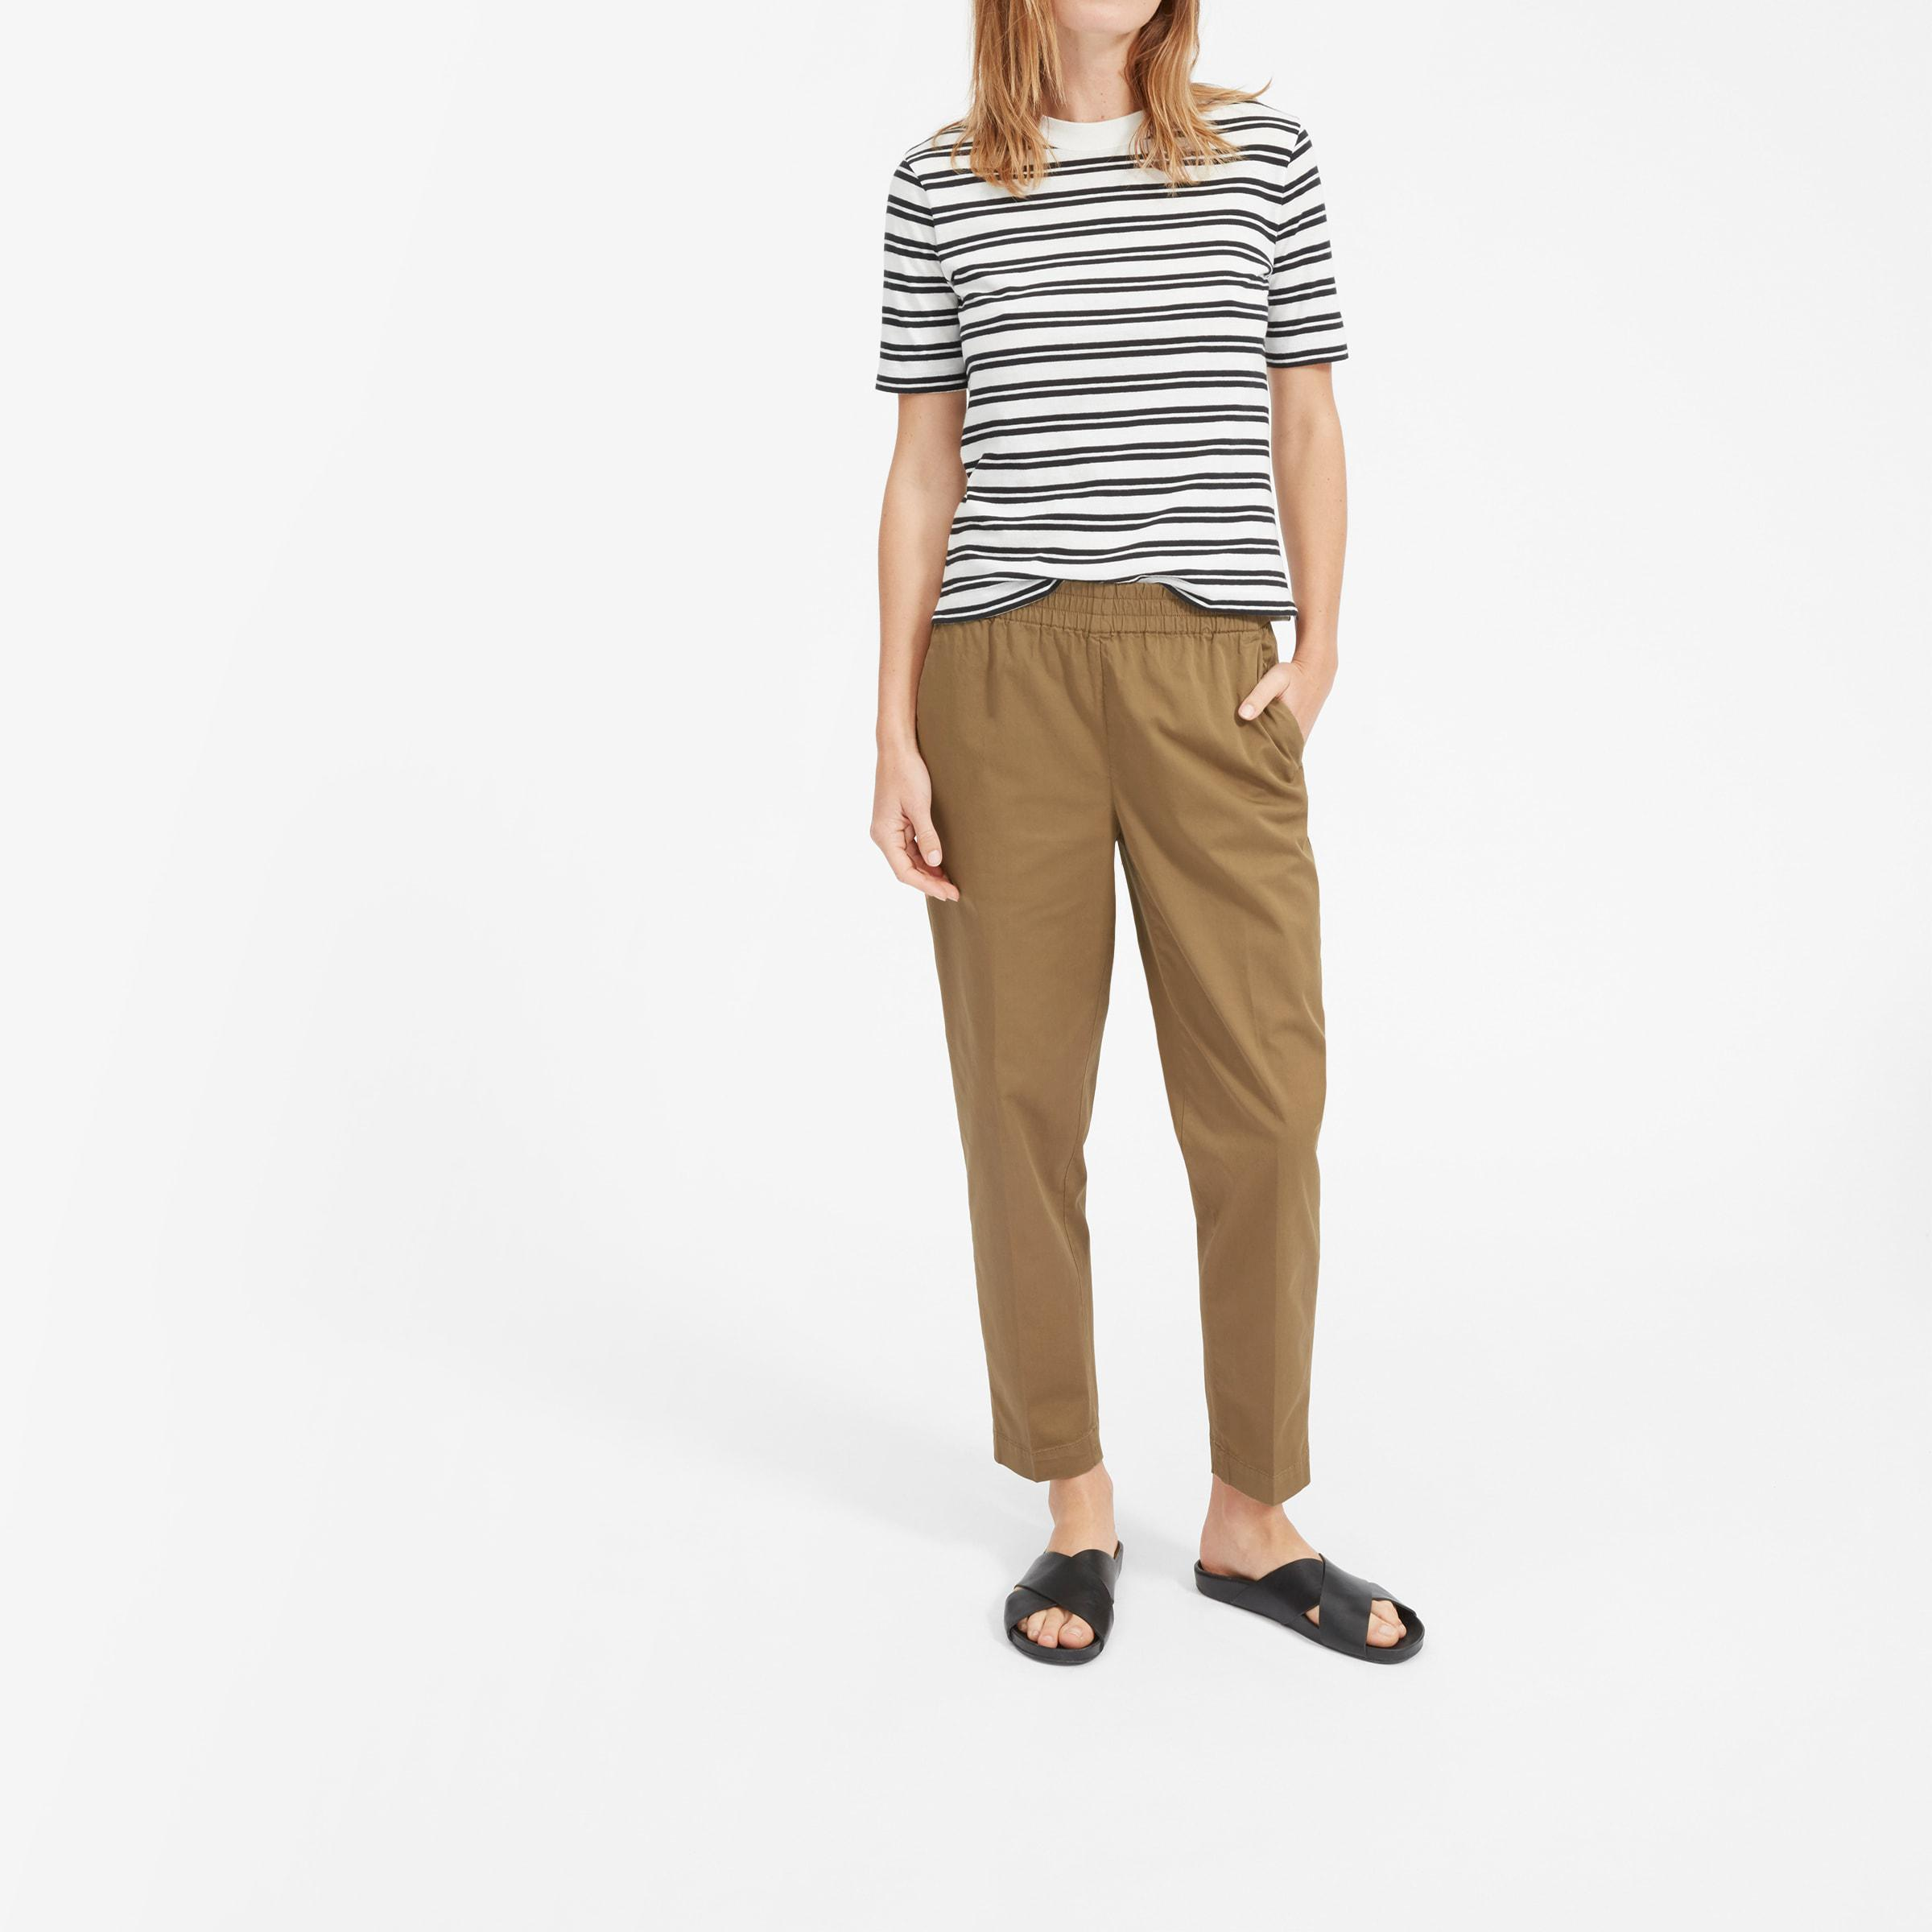 The Easy Chino